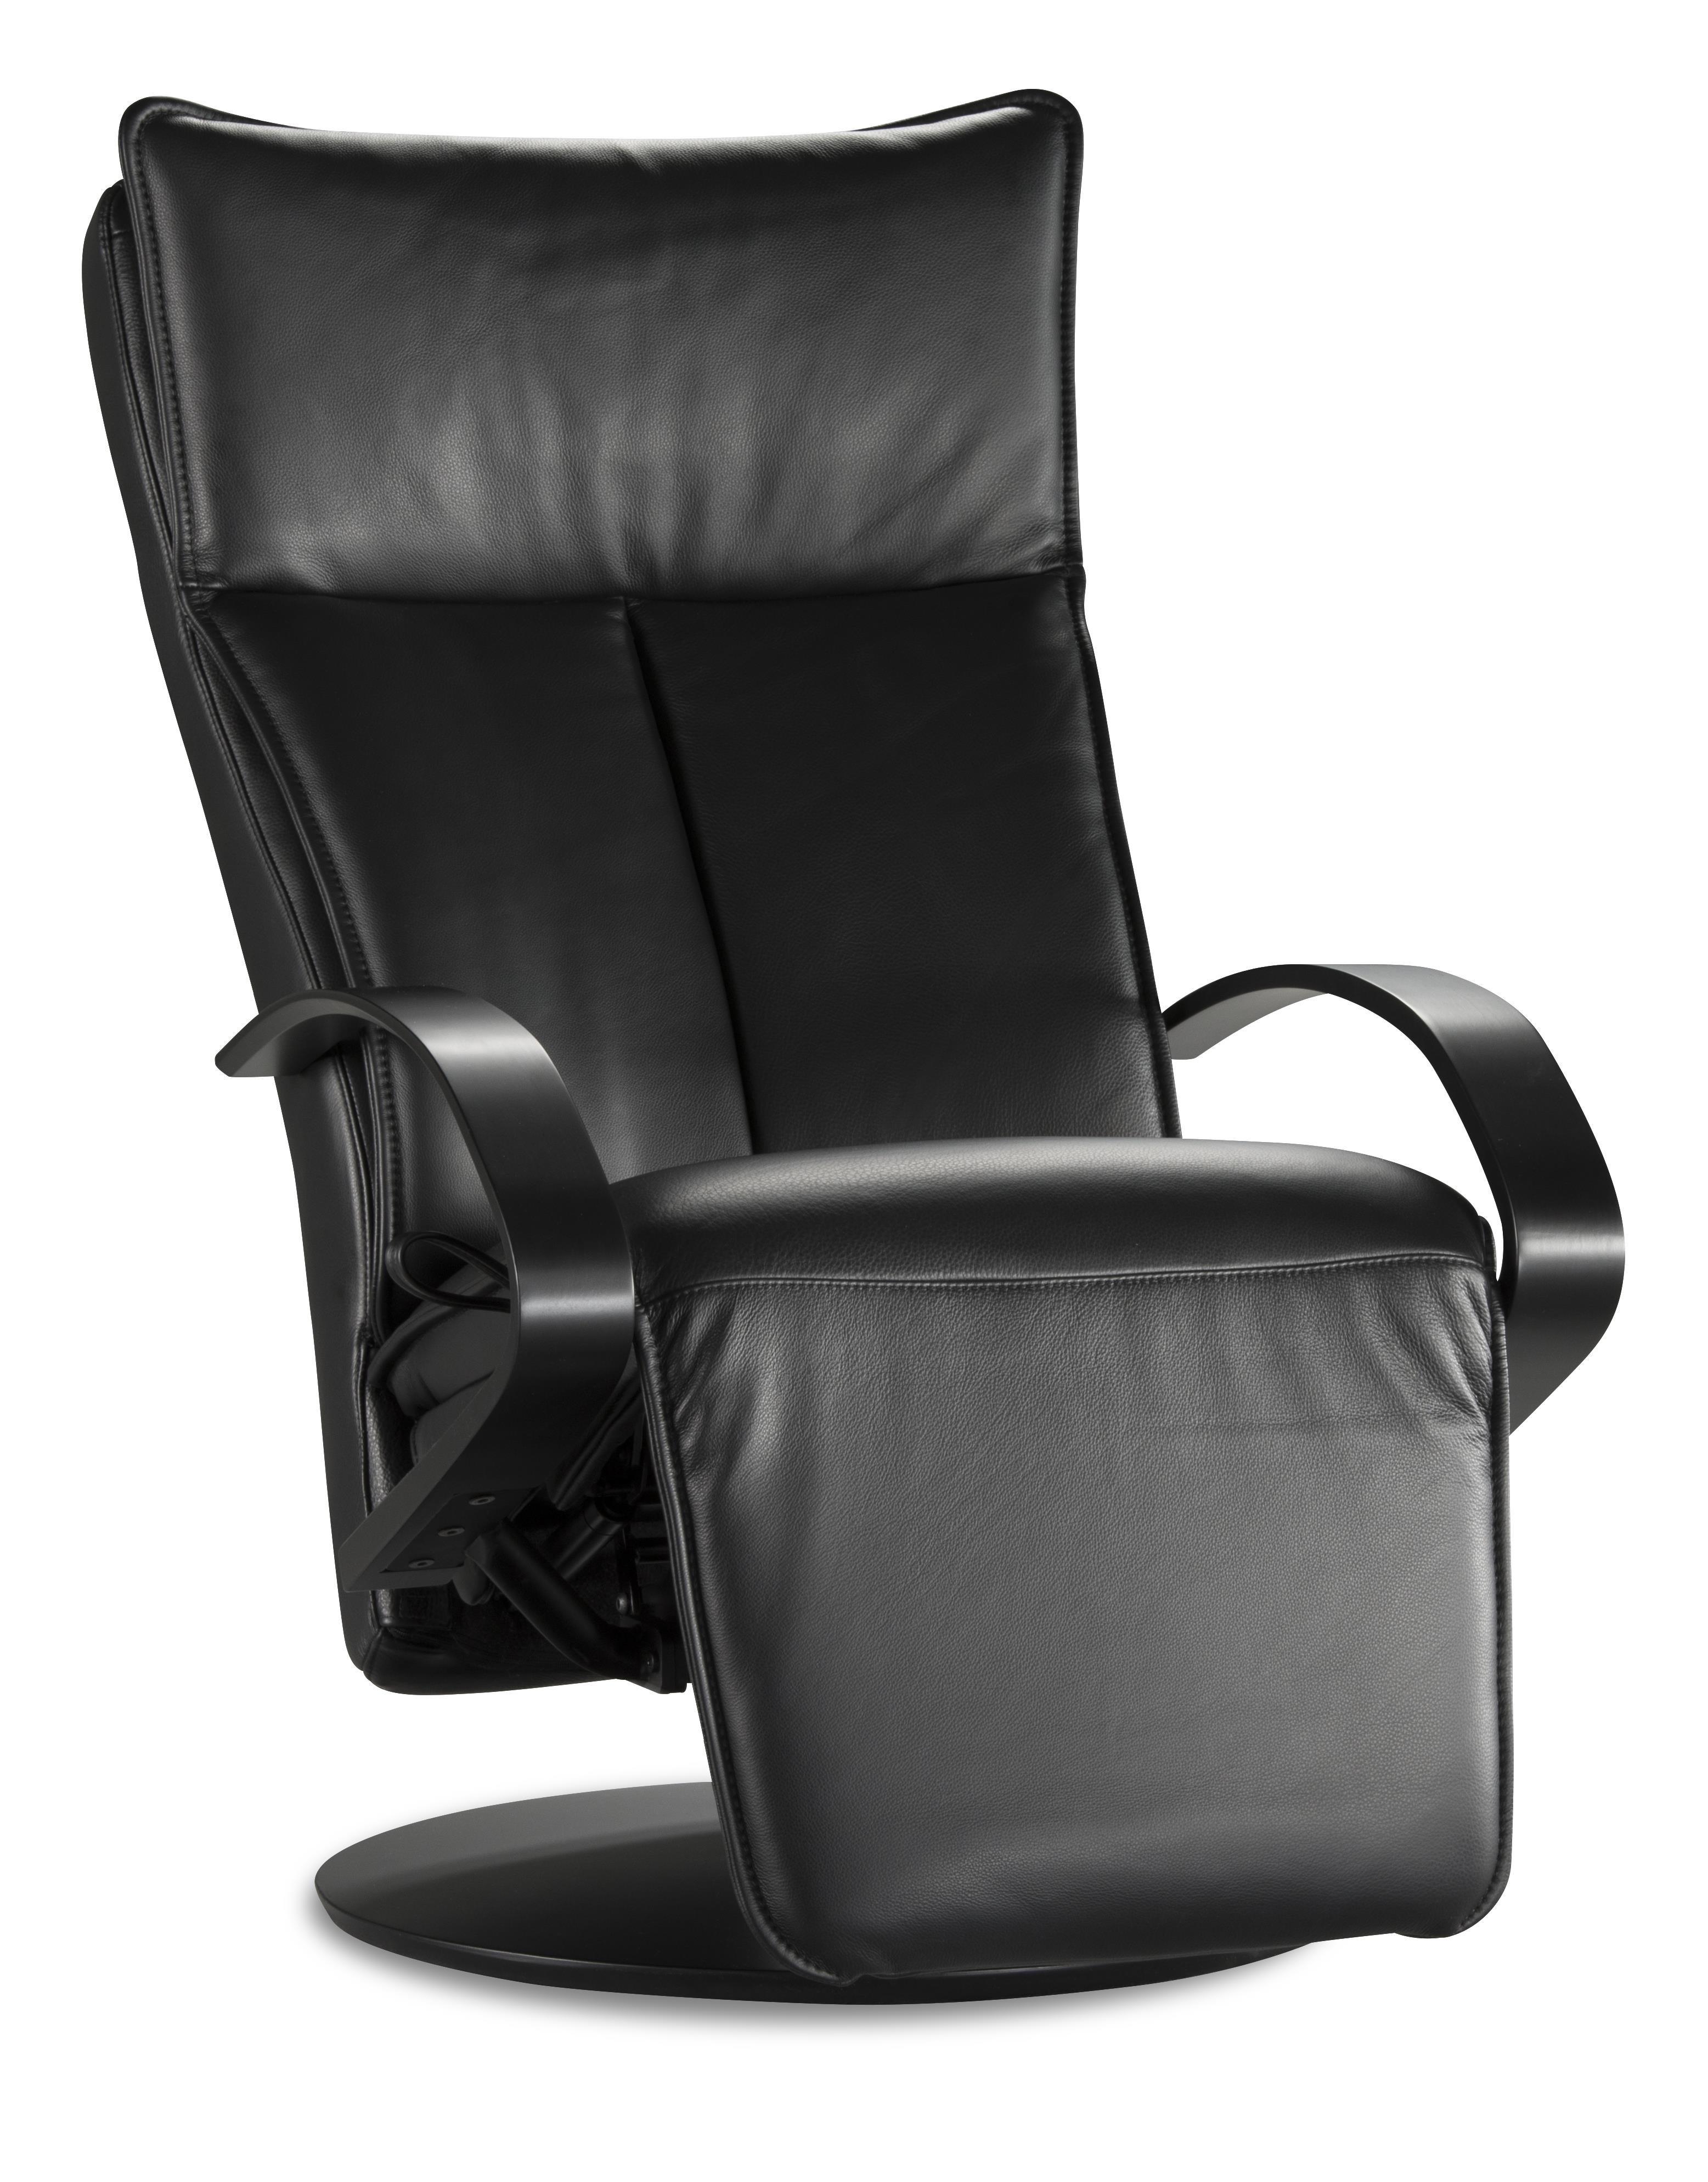 IMG Norway 2500 Elite Black Leather Recliner - Item Number: 2500